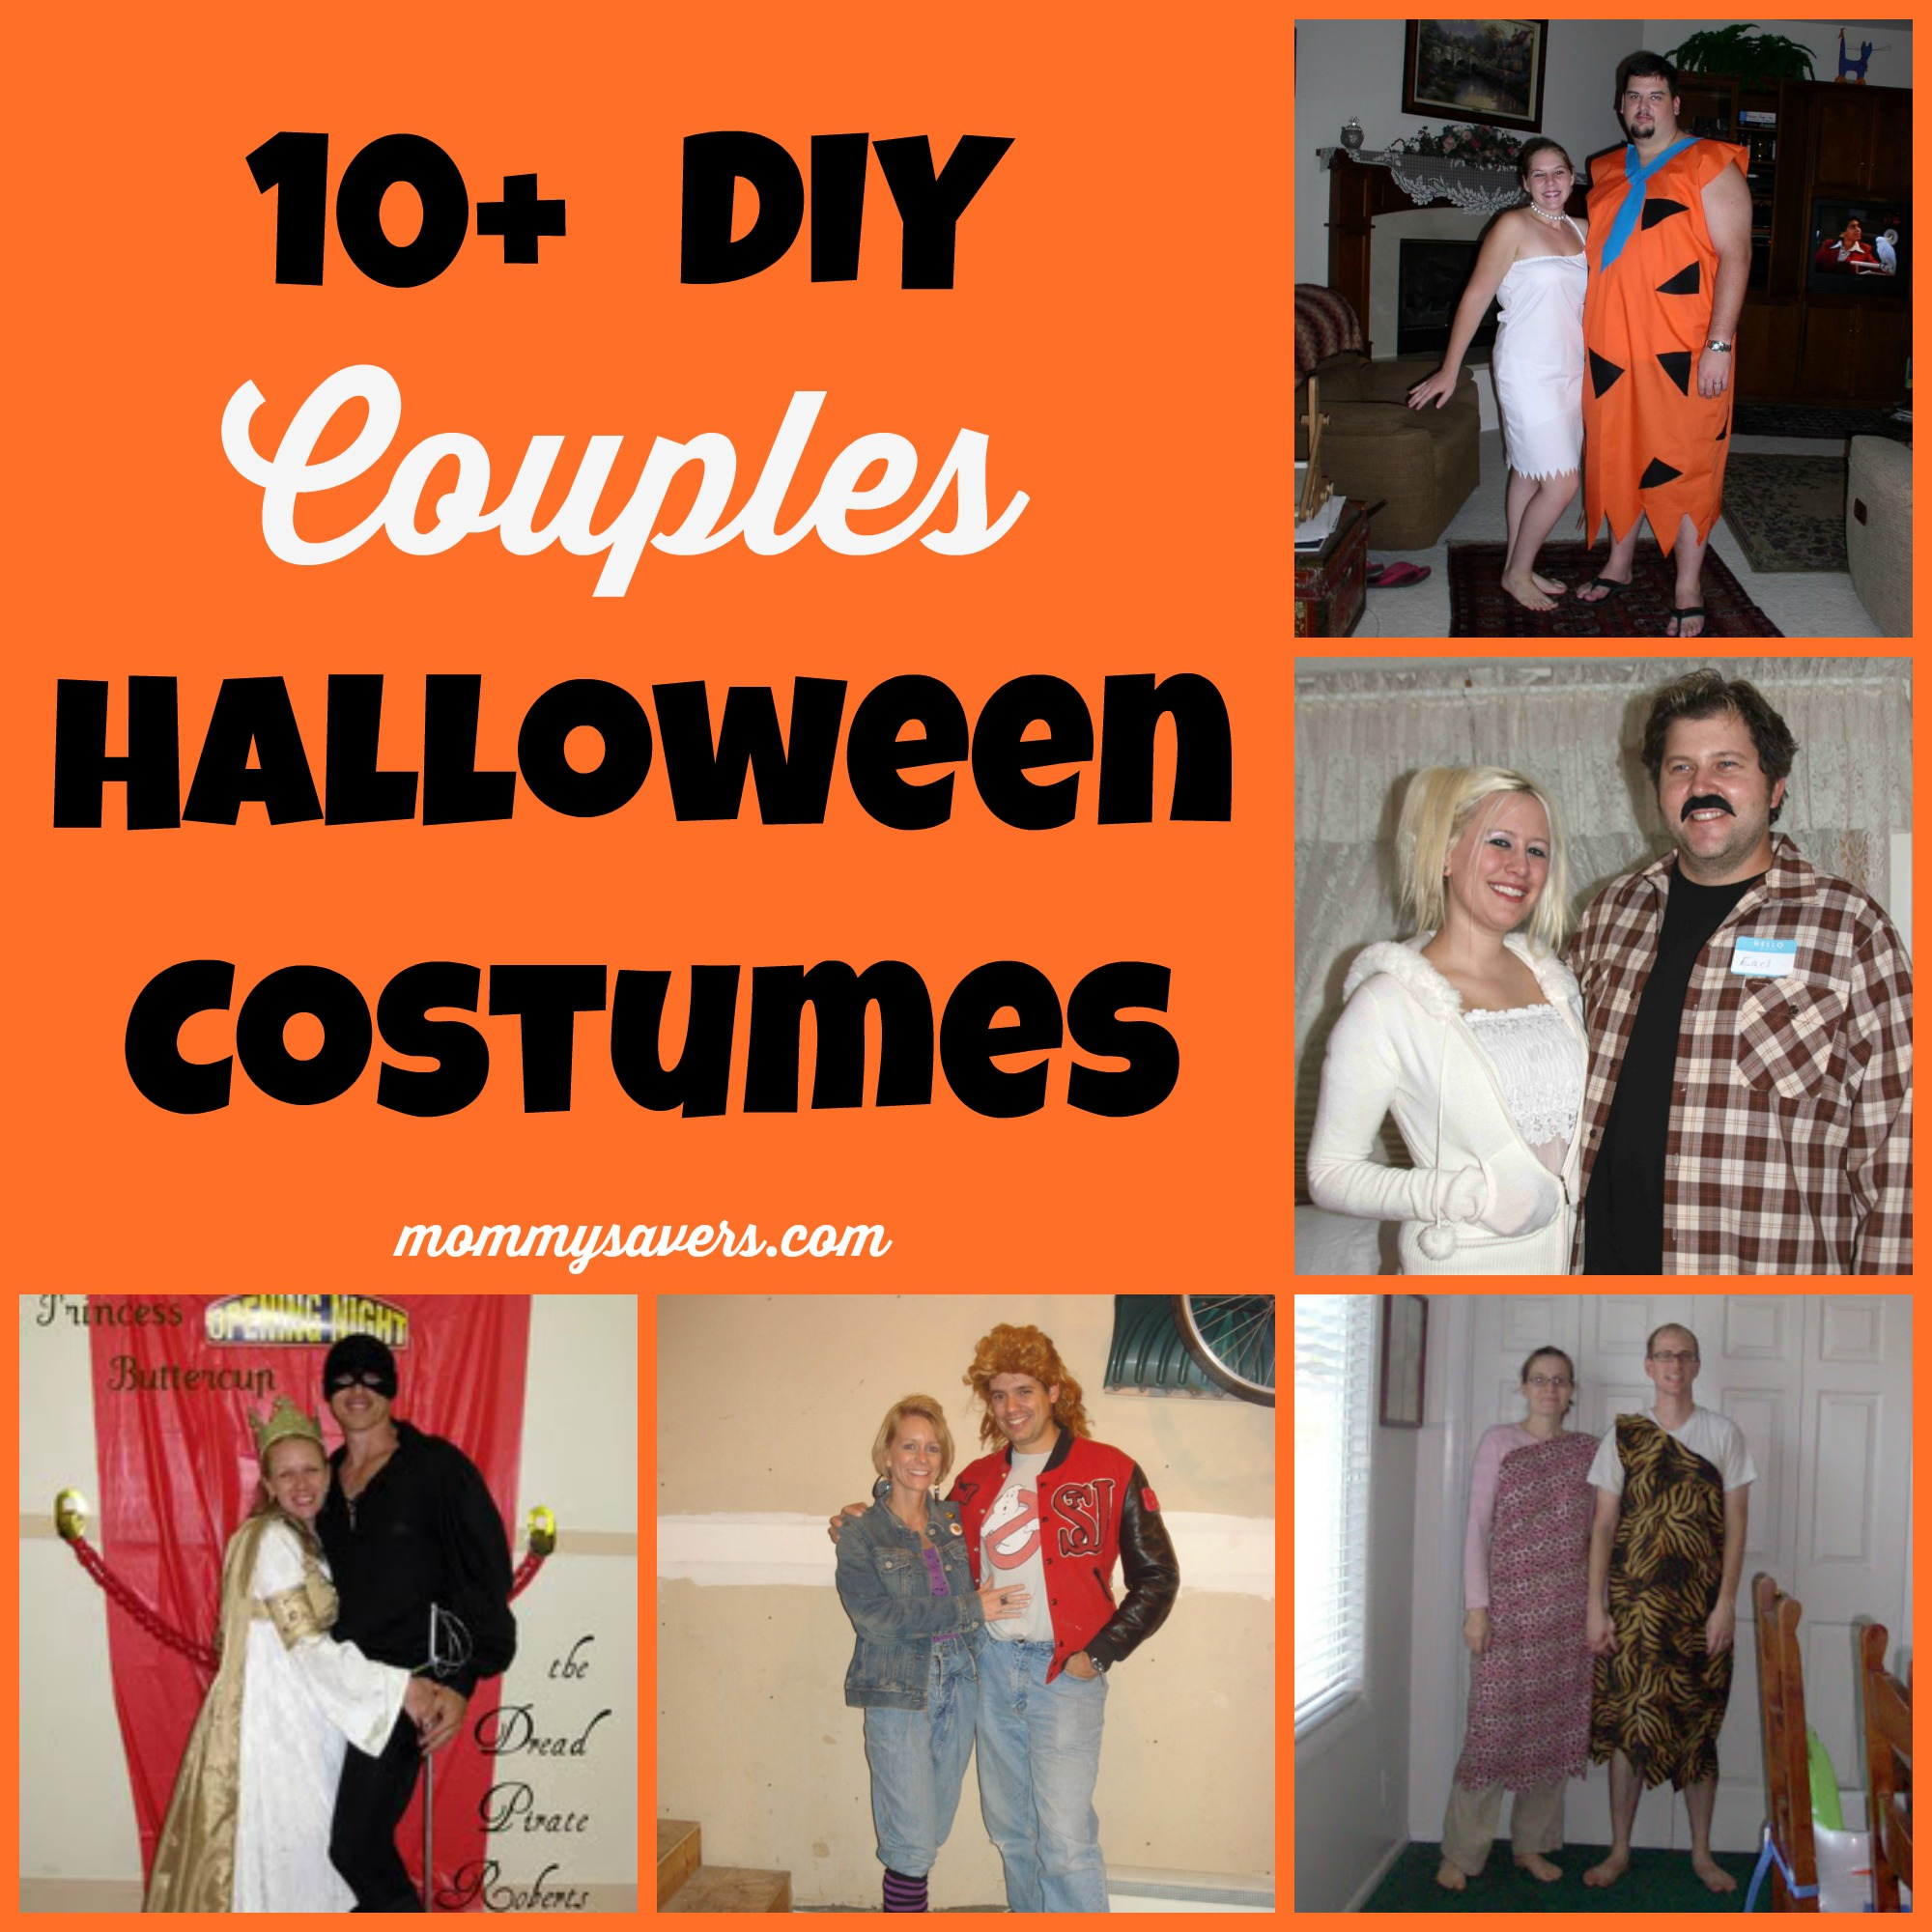 diy couples halloween costumes